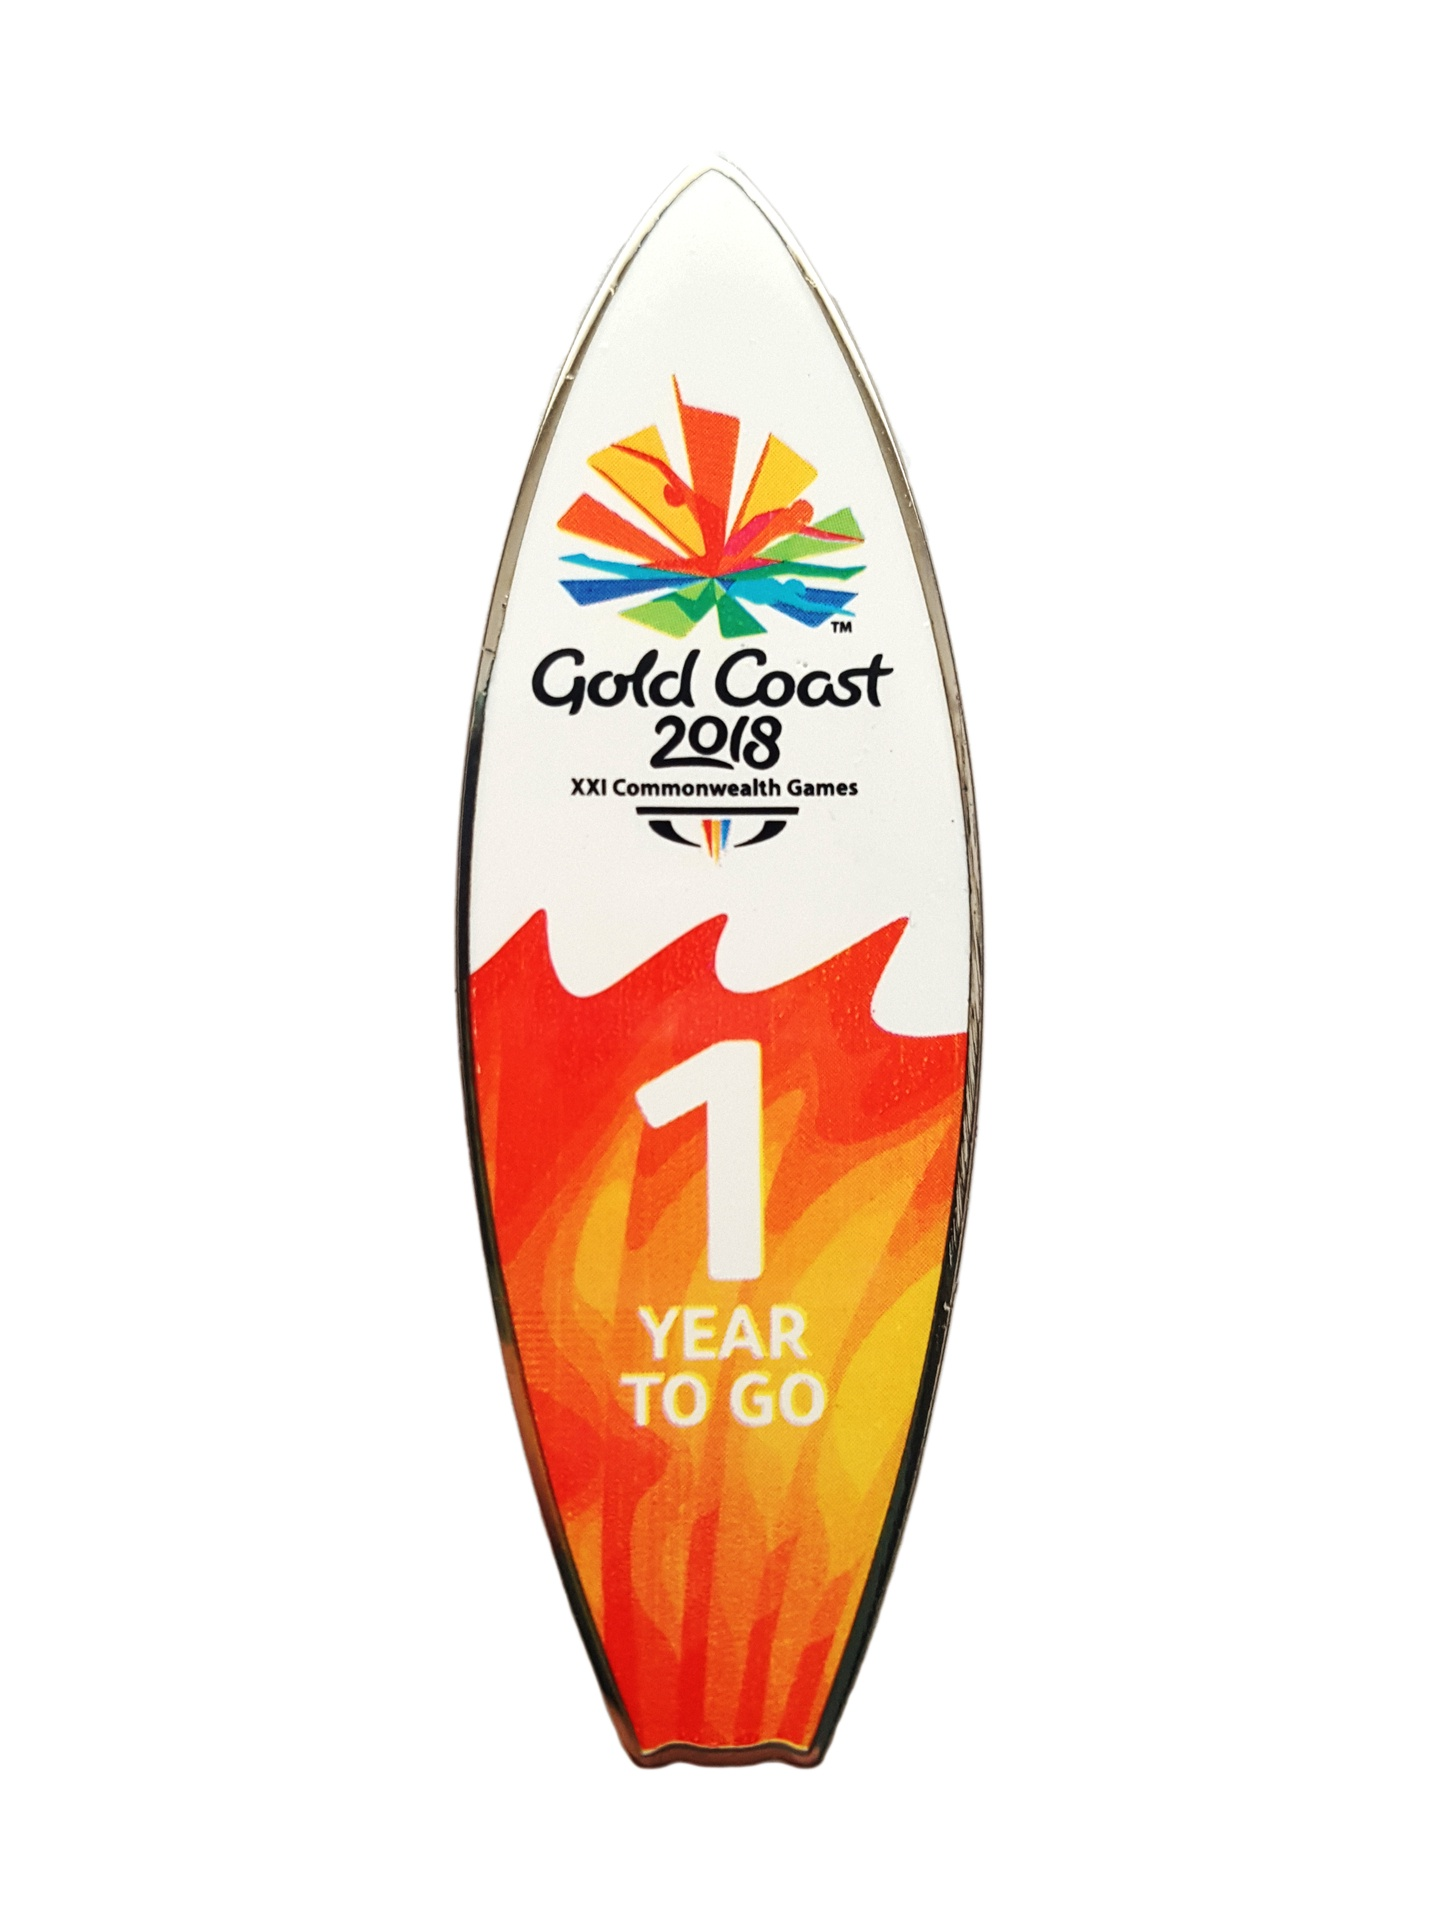 GC2018 One Year to Go Pin Image